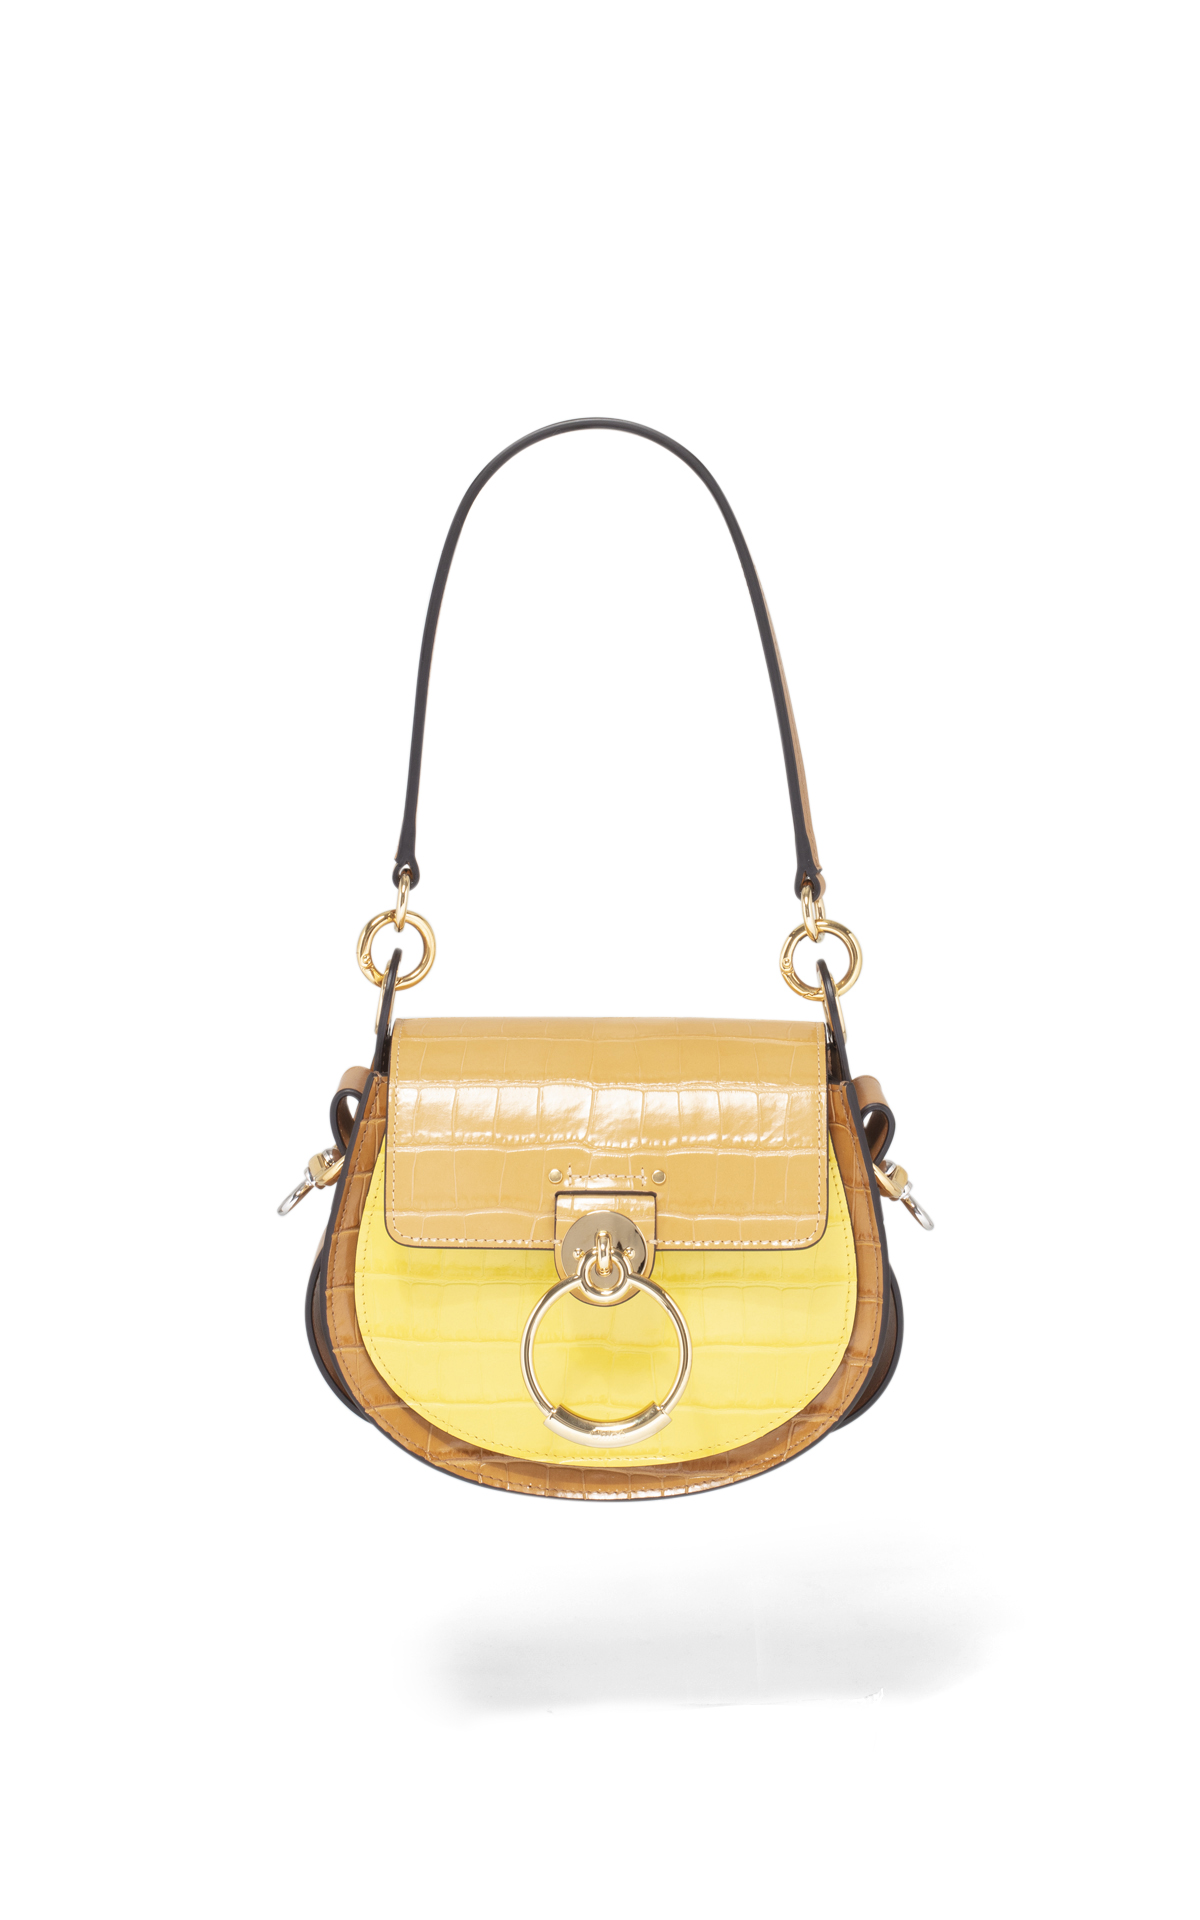 Chloé Sac Tess Joyful Yellow